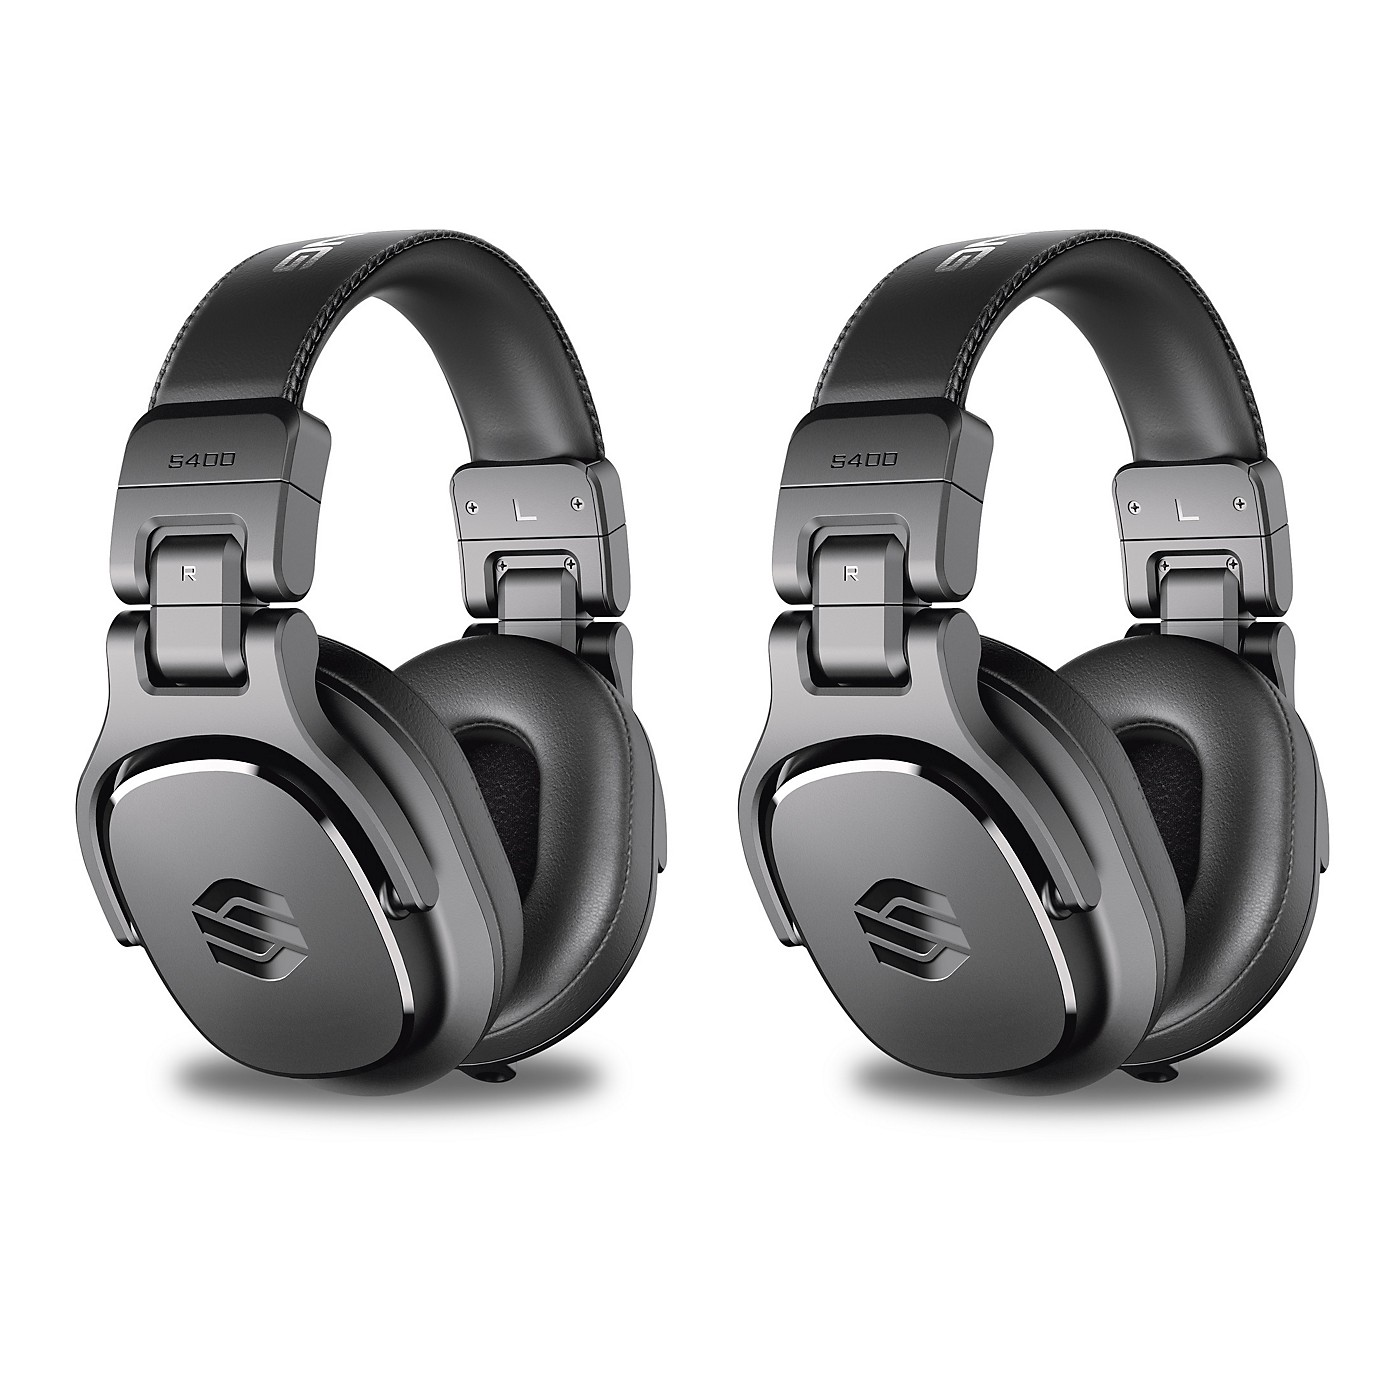 Sterling Audio Two Pair of S400 Headphones With 40 mm Drivers thumbnail